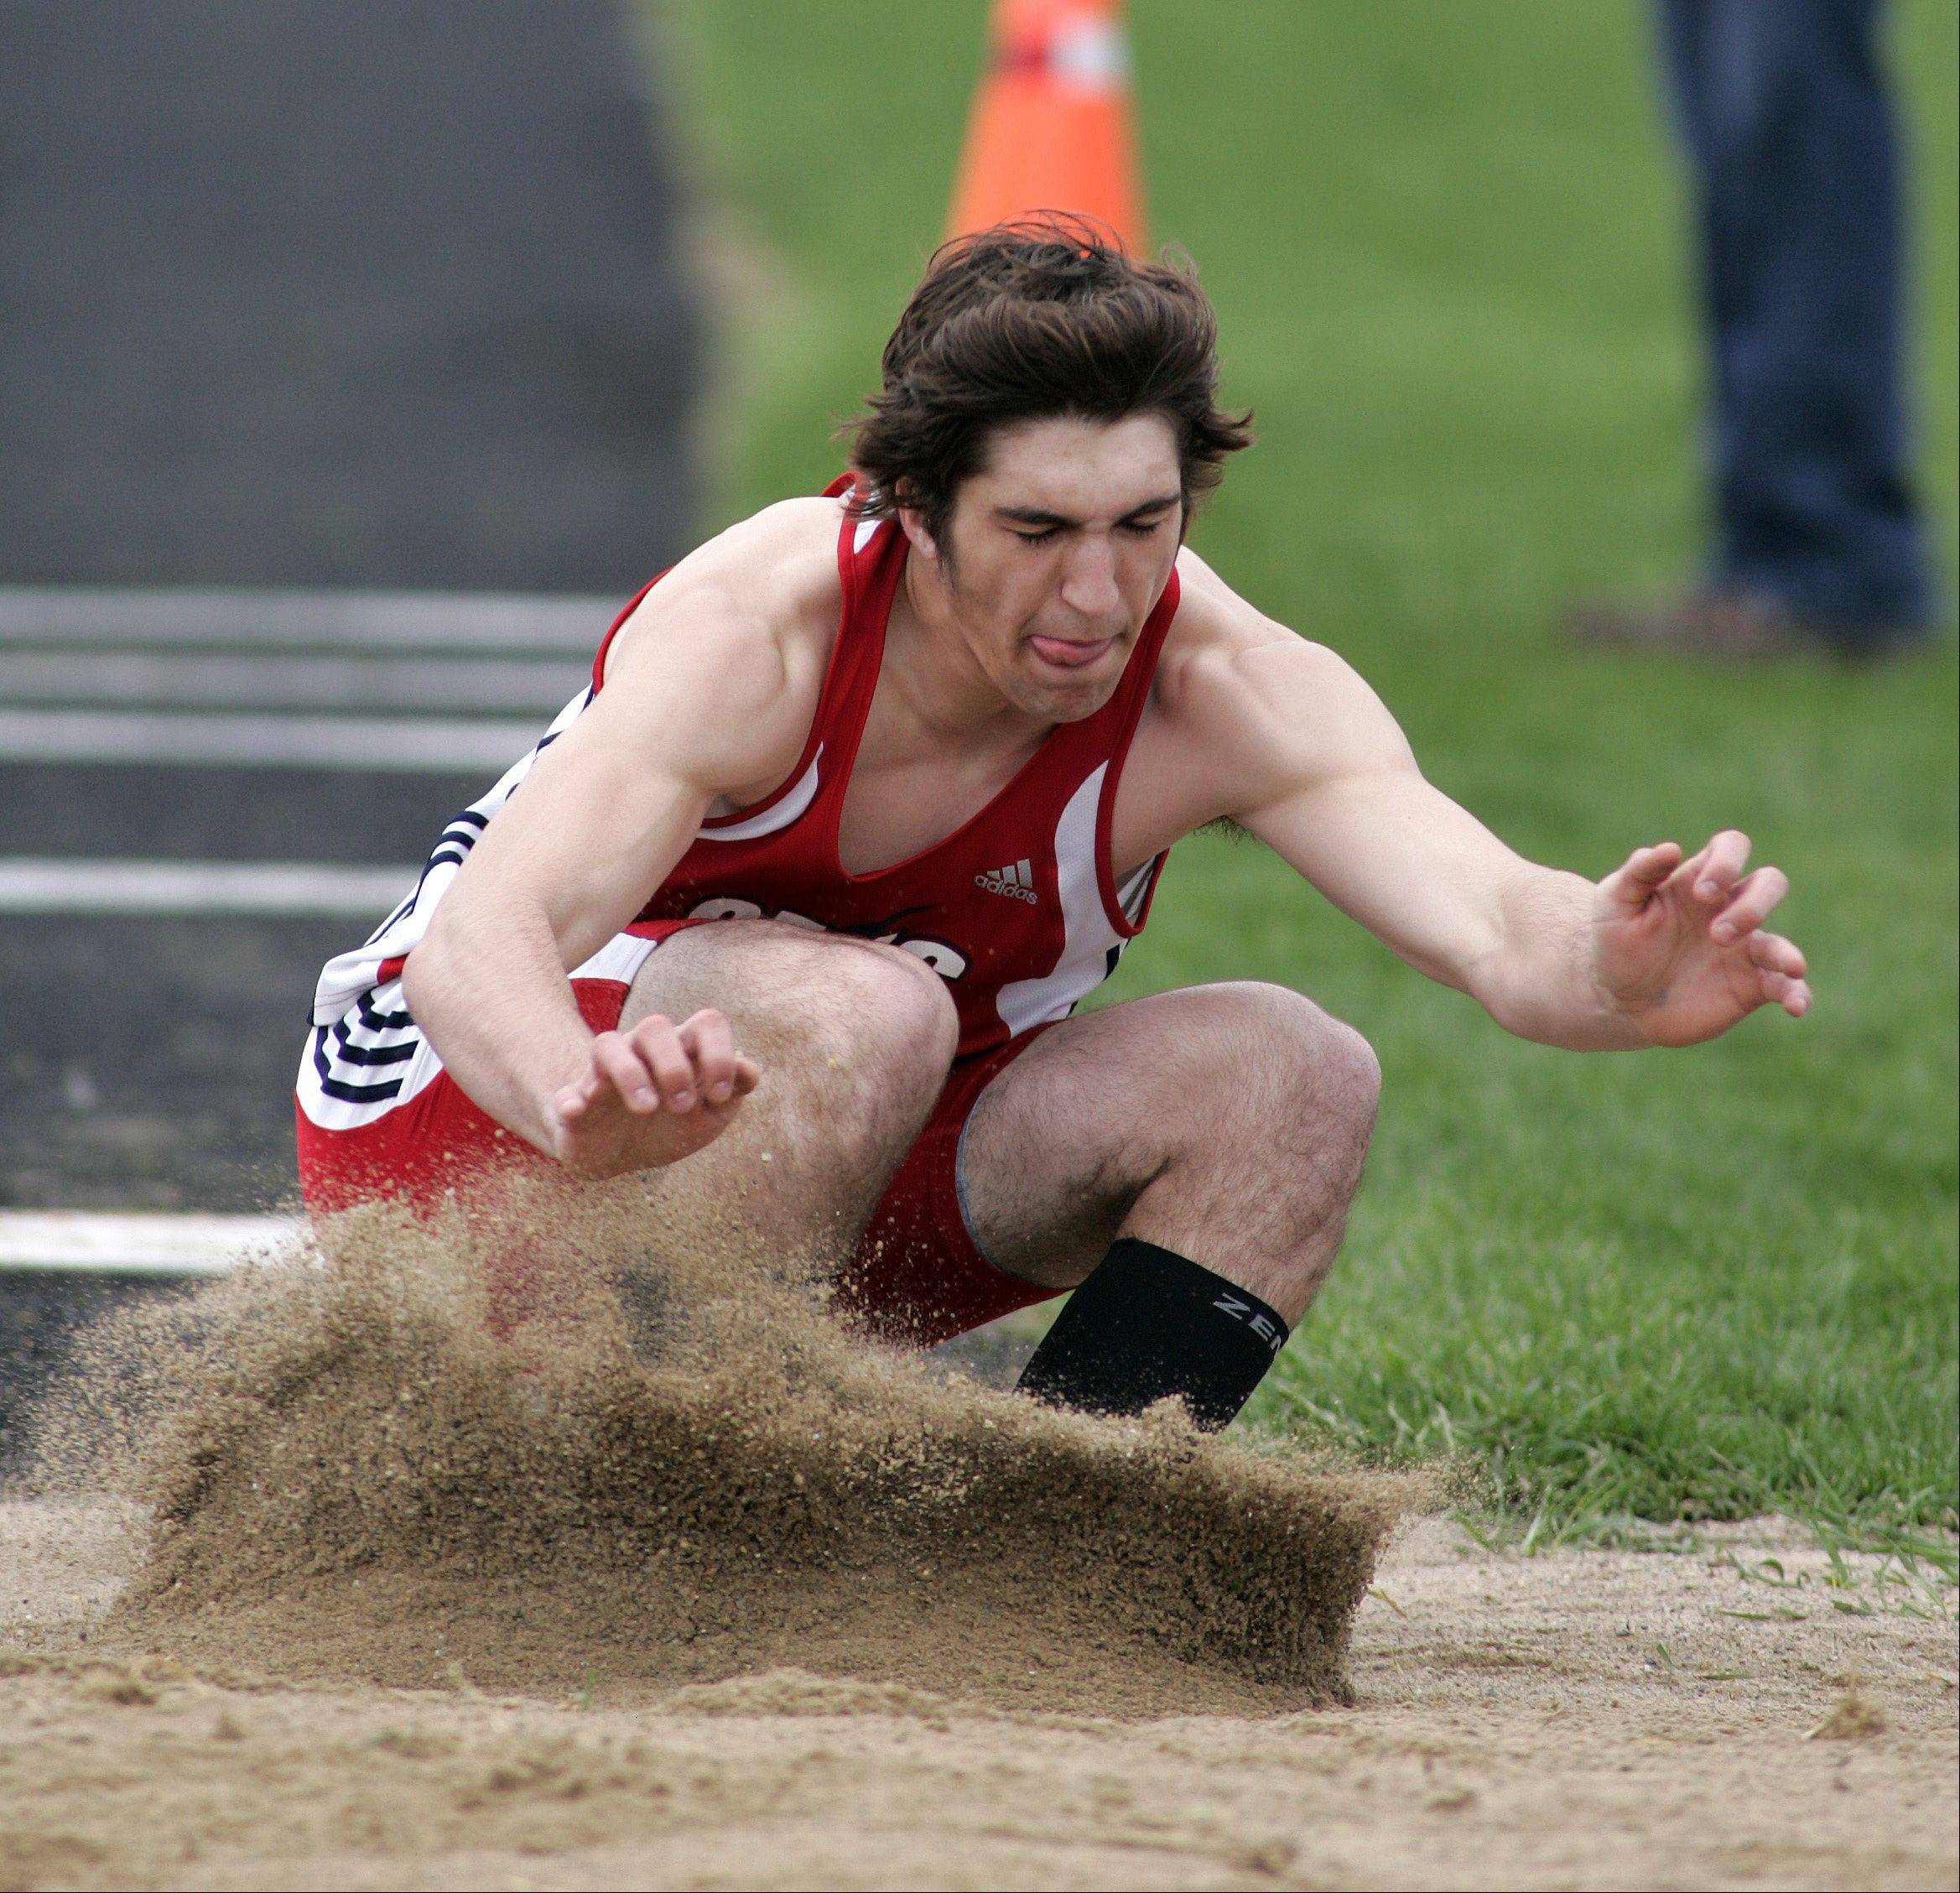 Kyle Kumerow of South Elgin competes in the triple jump during the Kane County boys track meet Friday at Burlington Central.